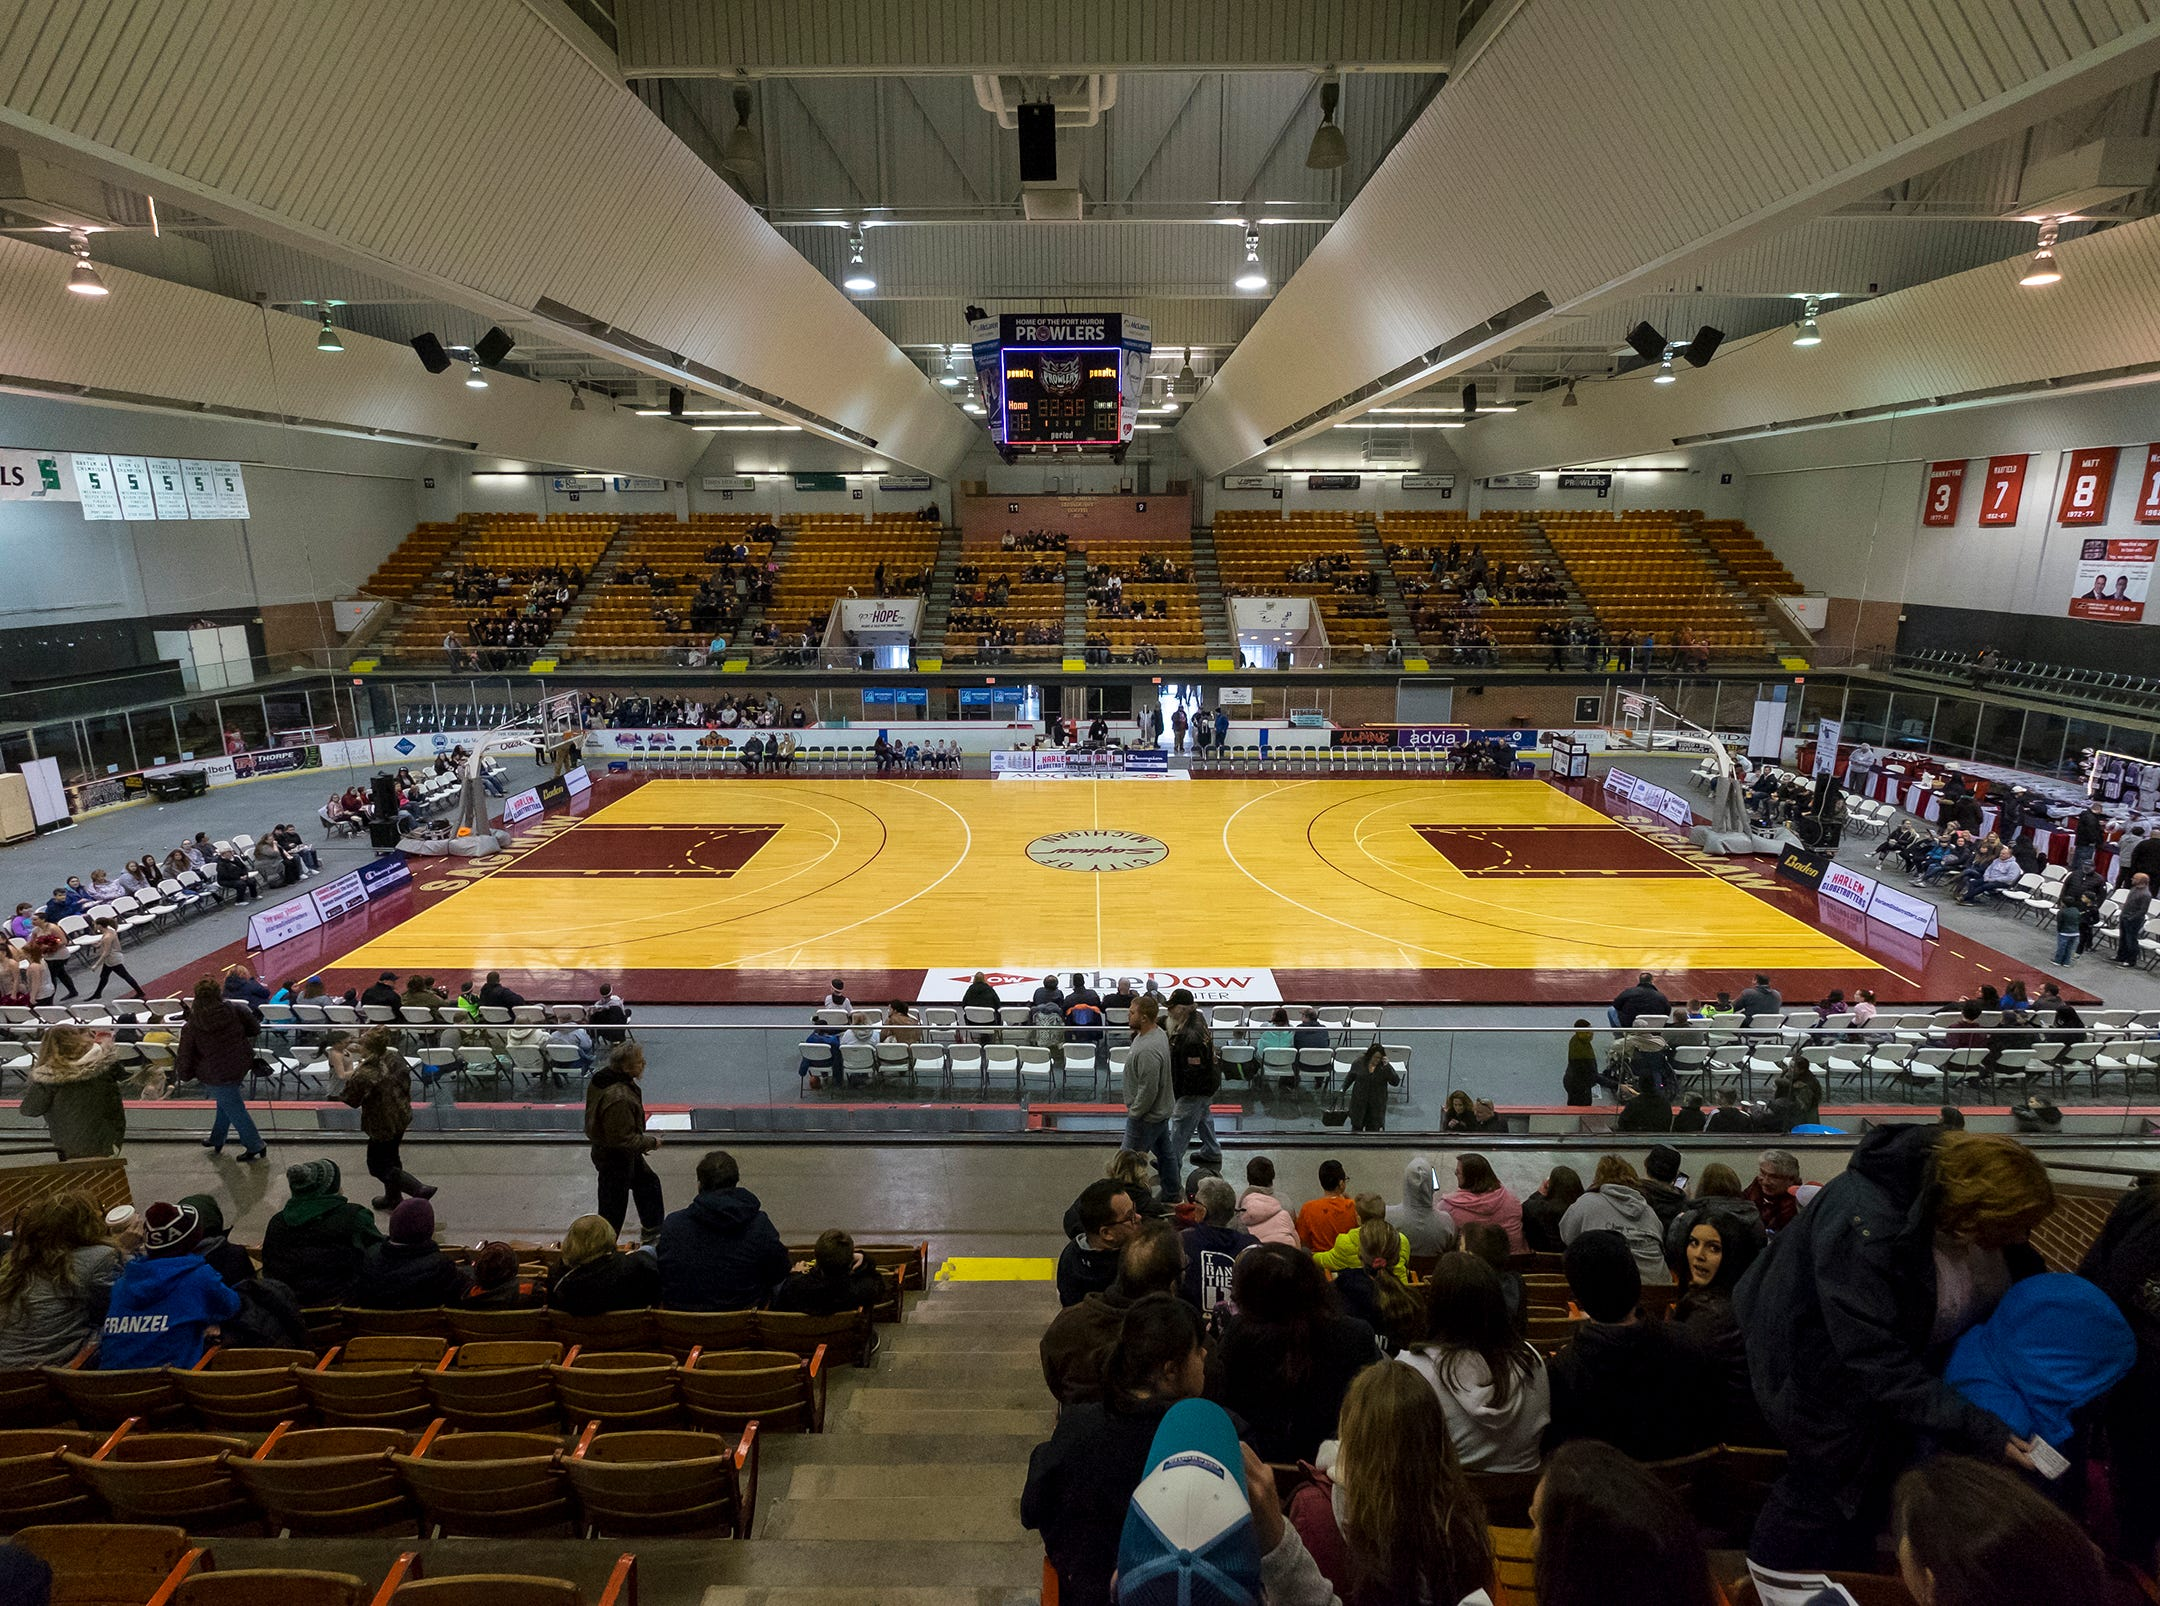 The ice arena inside McMorran Arena is converted into a basketball court Saturday, Feb. 2, 2019 before the Harlem Globetrotters taken on the Washington Generals.